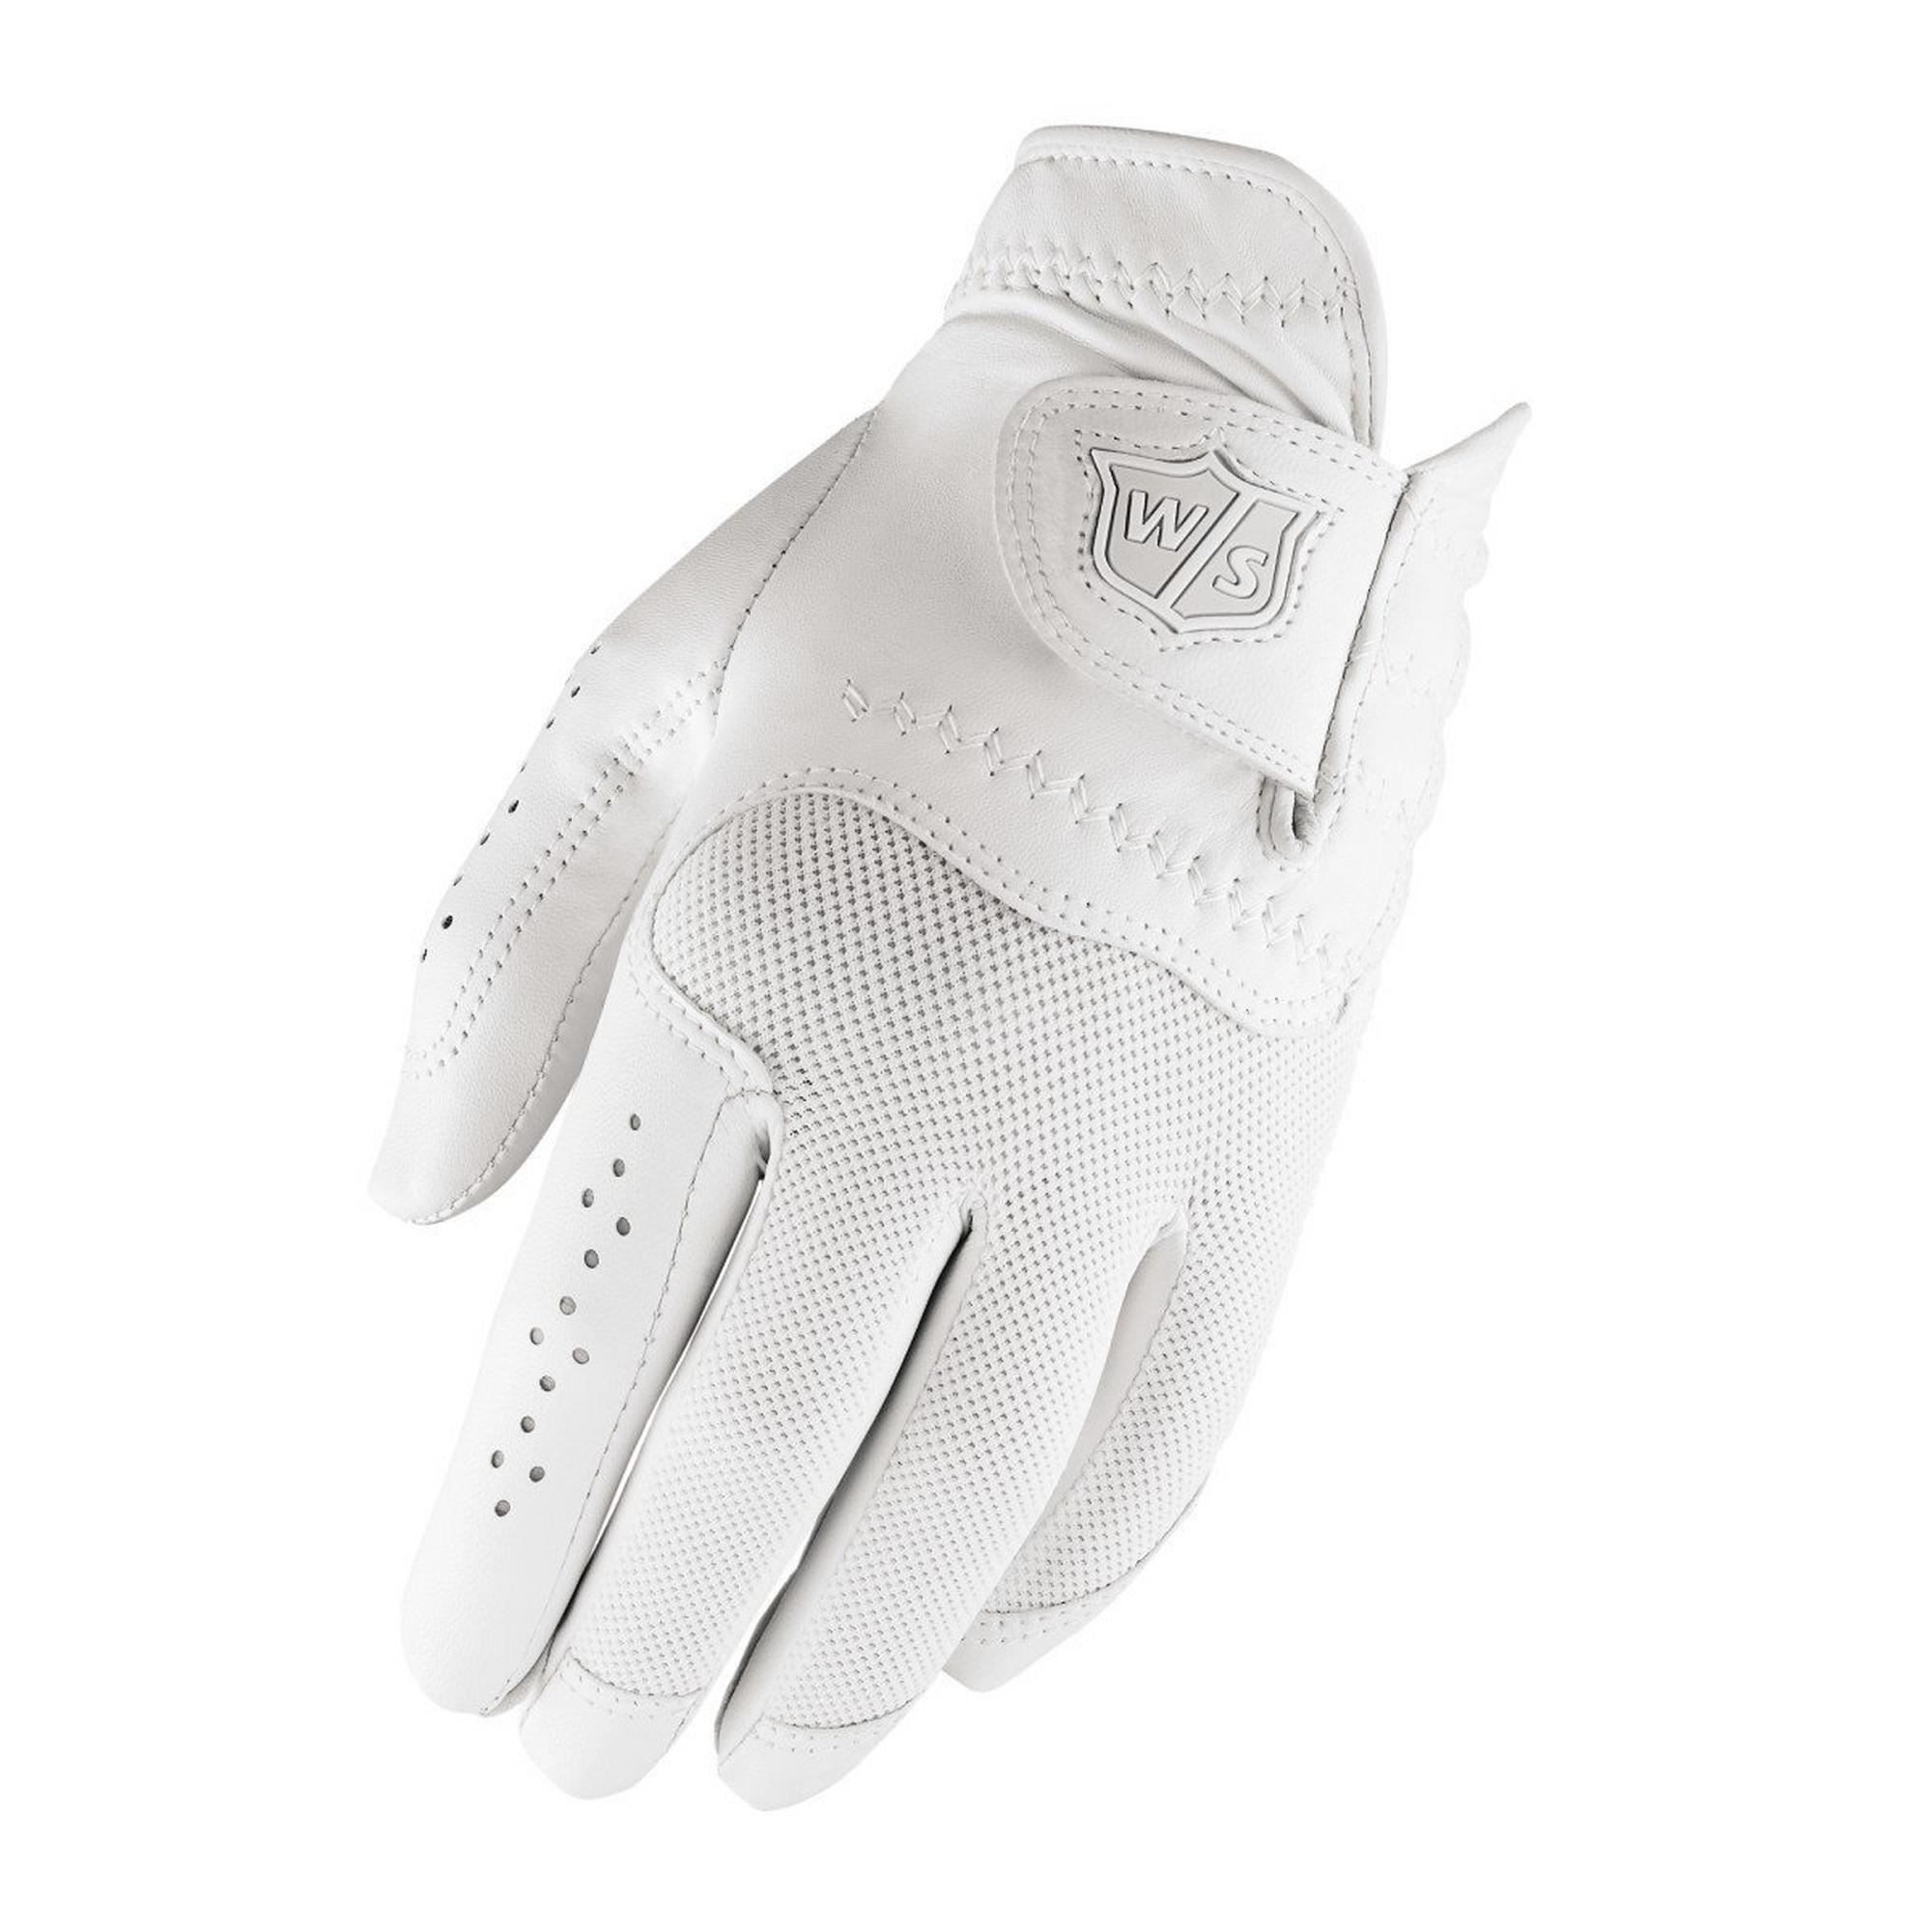 Women's Conform Golf Glove